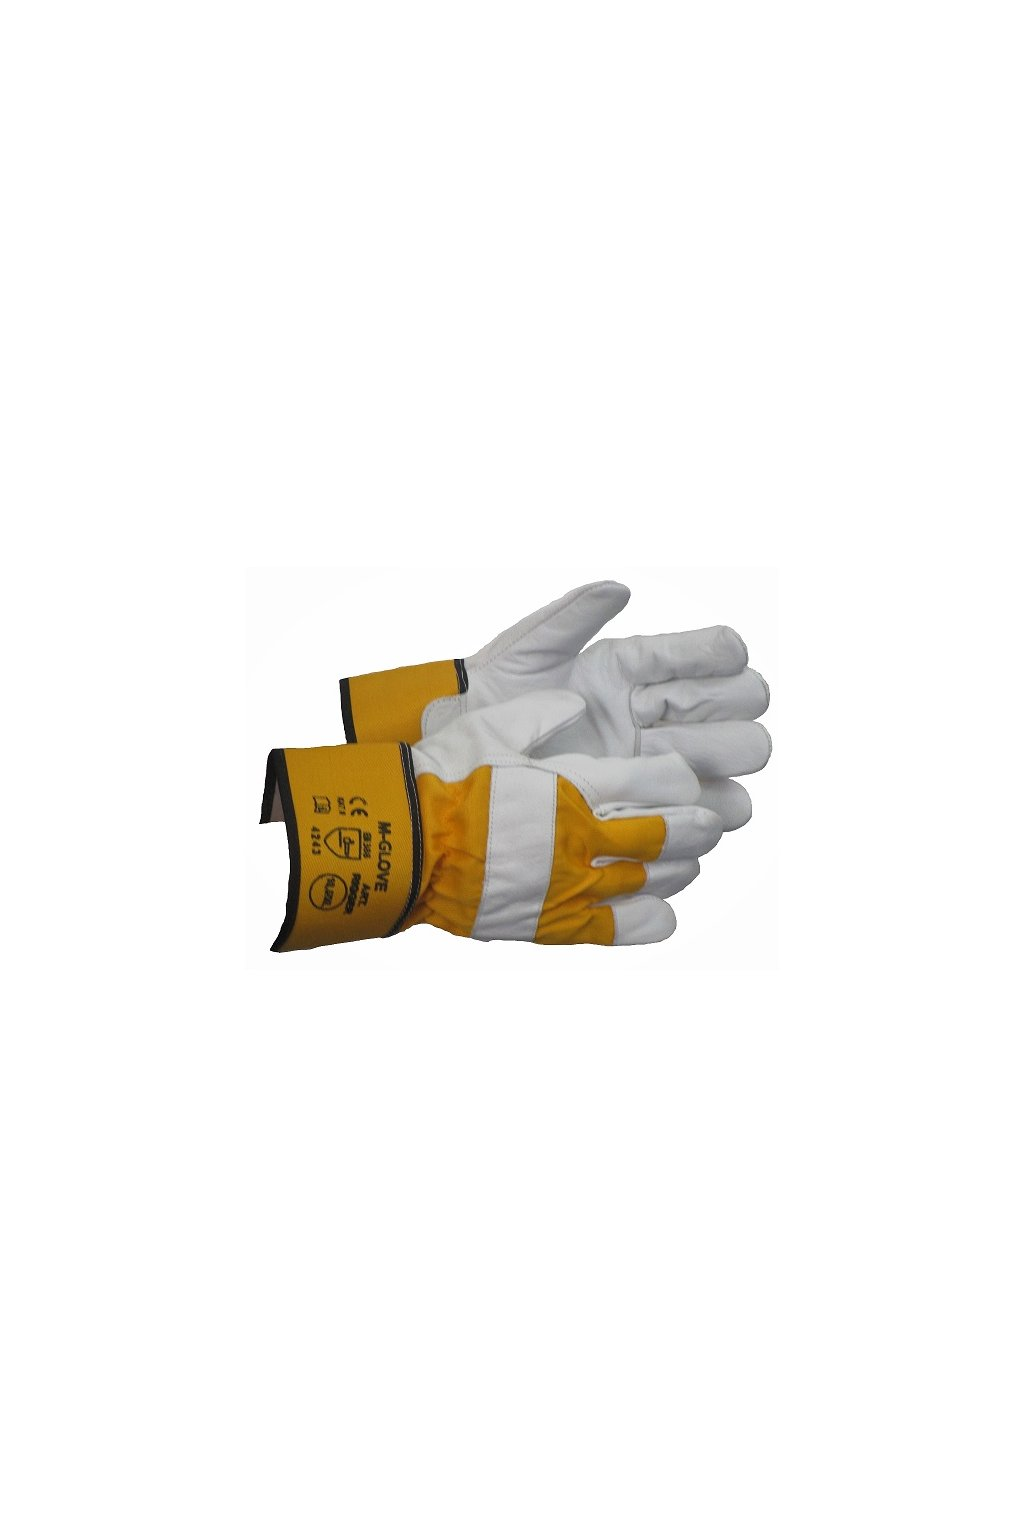 m glove rigger yellow